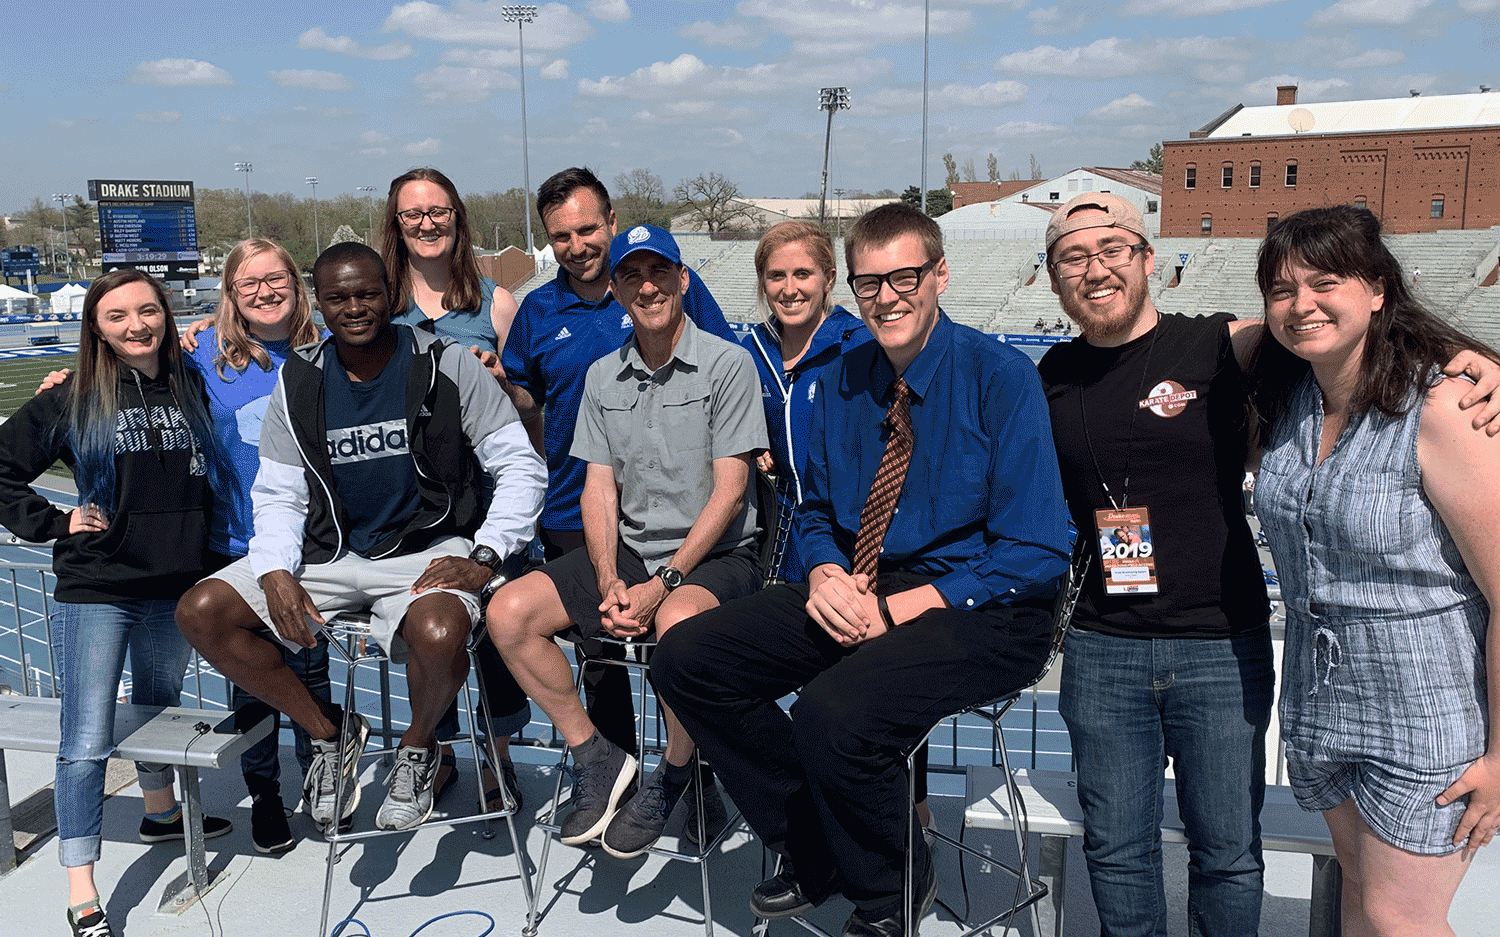 DBS Relays Show 2 crew and guests smiling at Drake Stadium